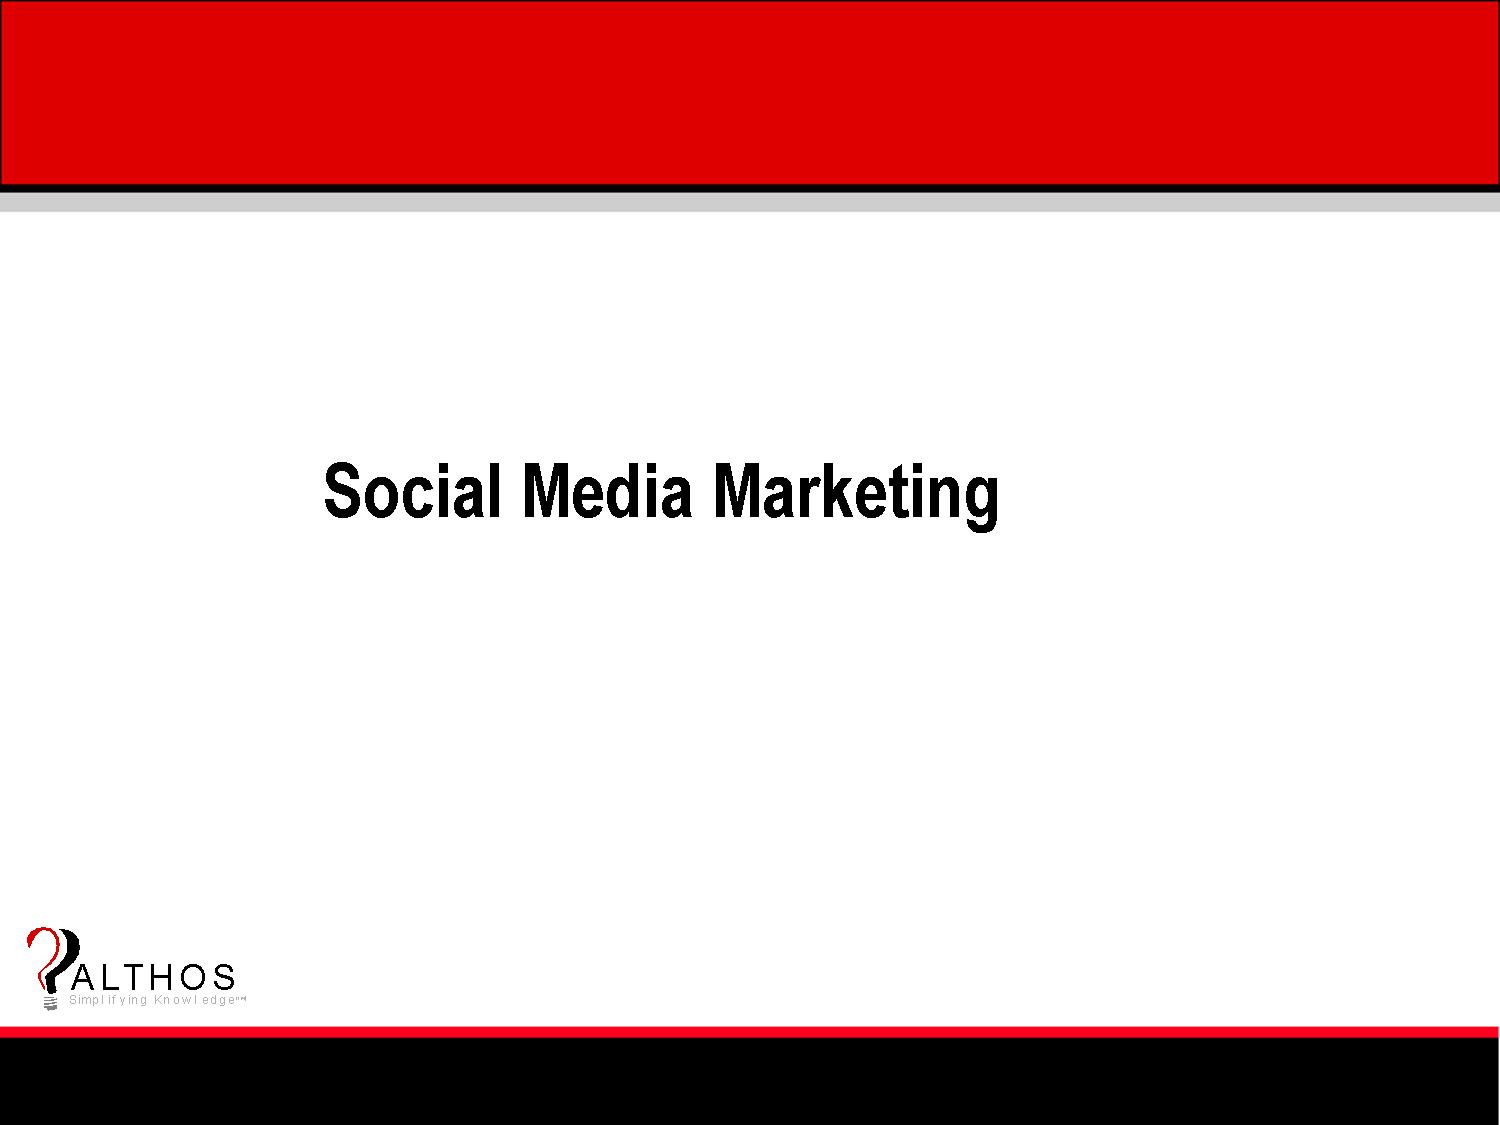 Social Media Marketing Tutorial Slide Title